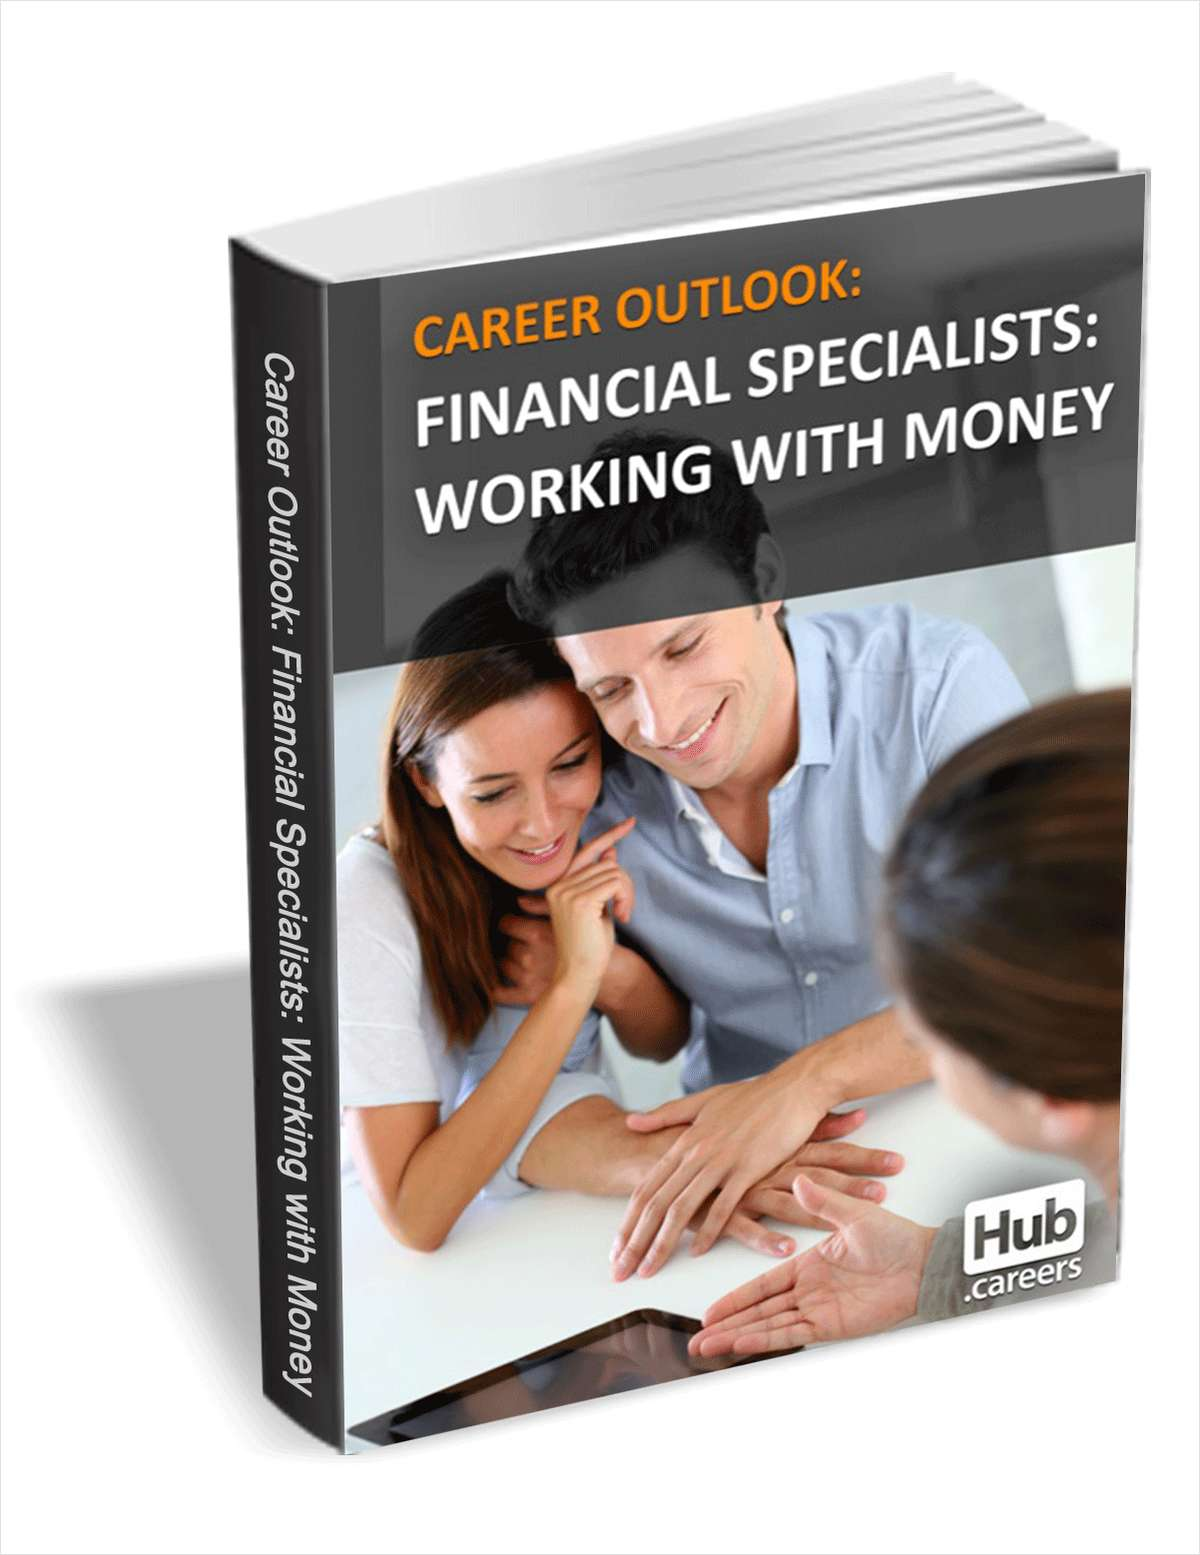 Financial Specialists - Working with Money